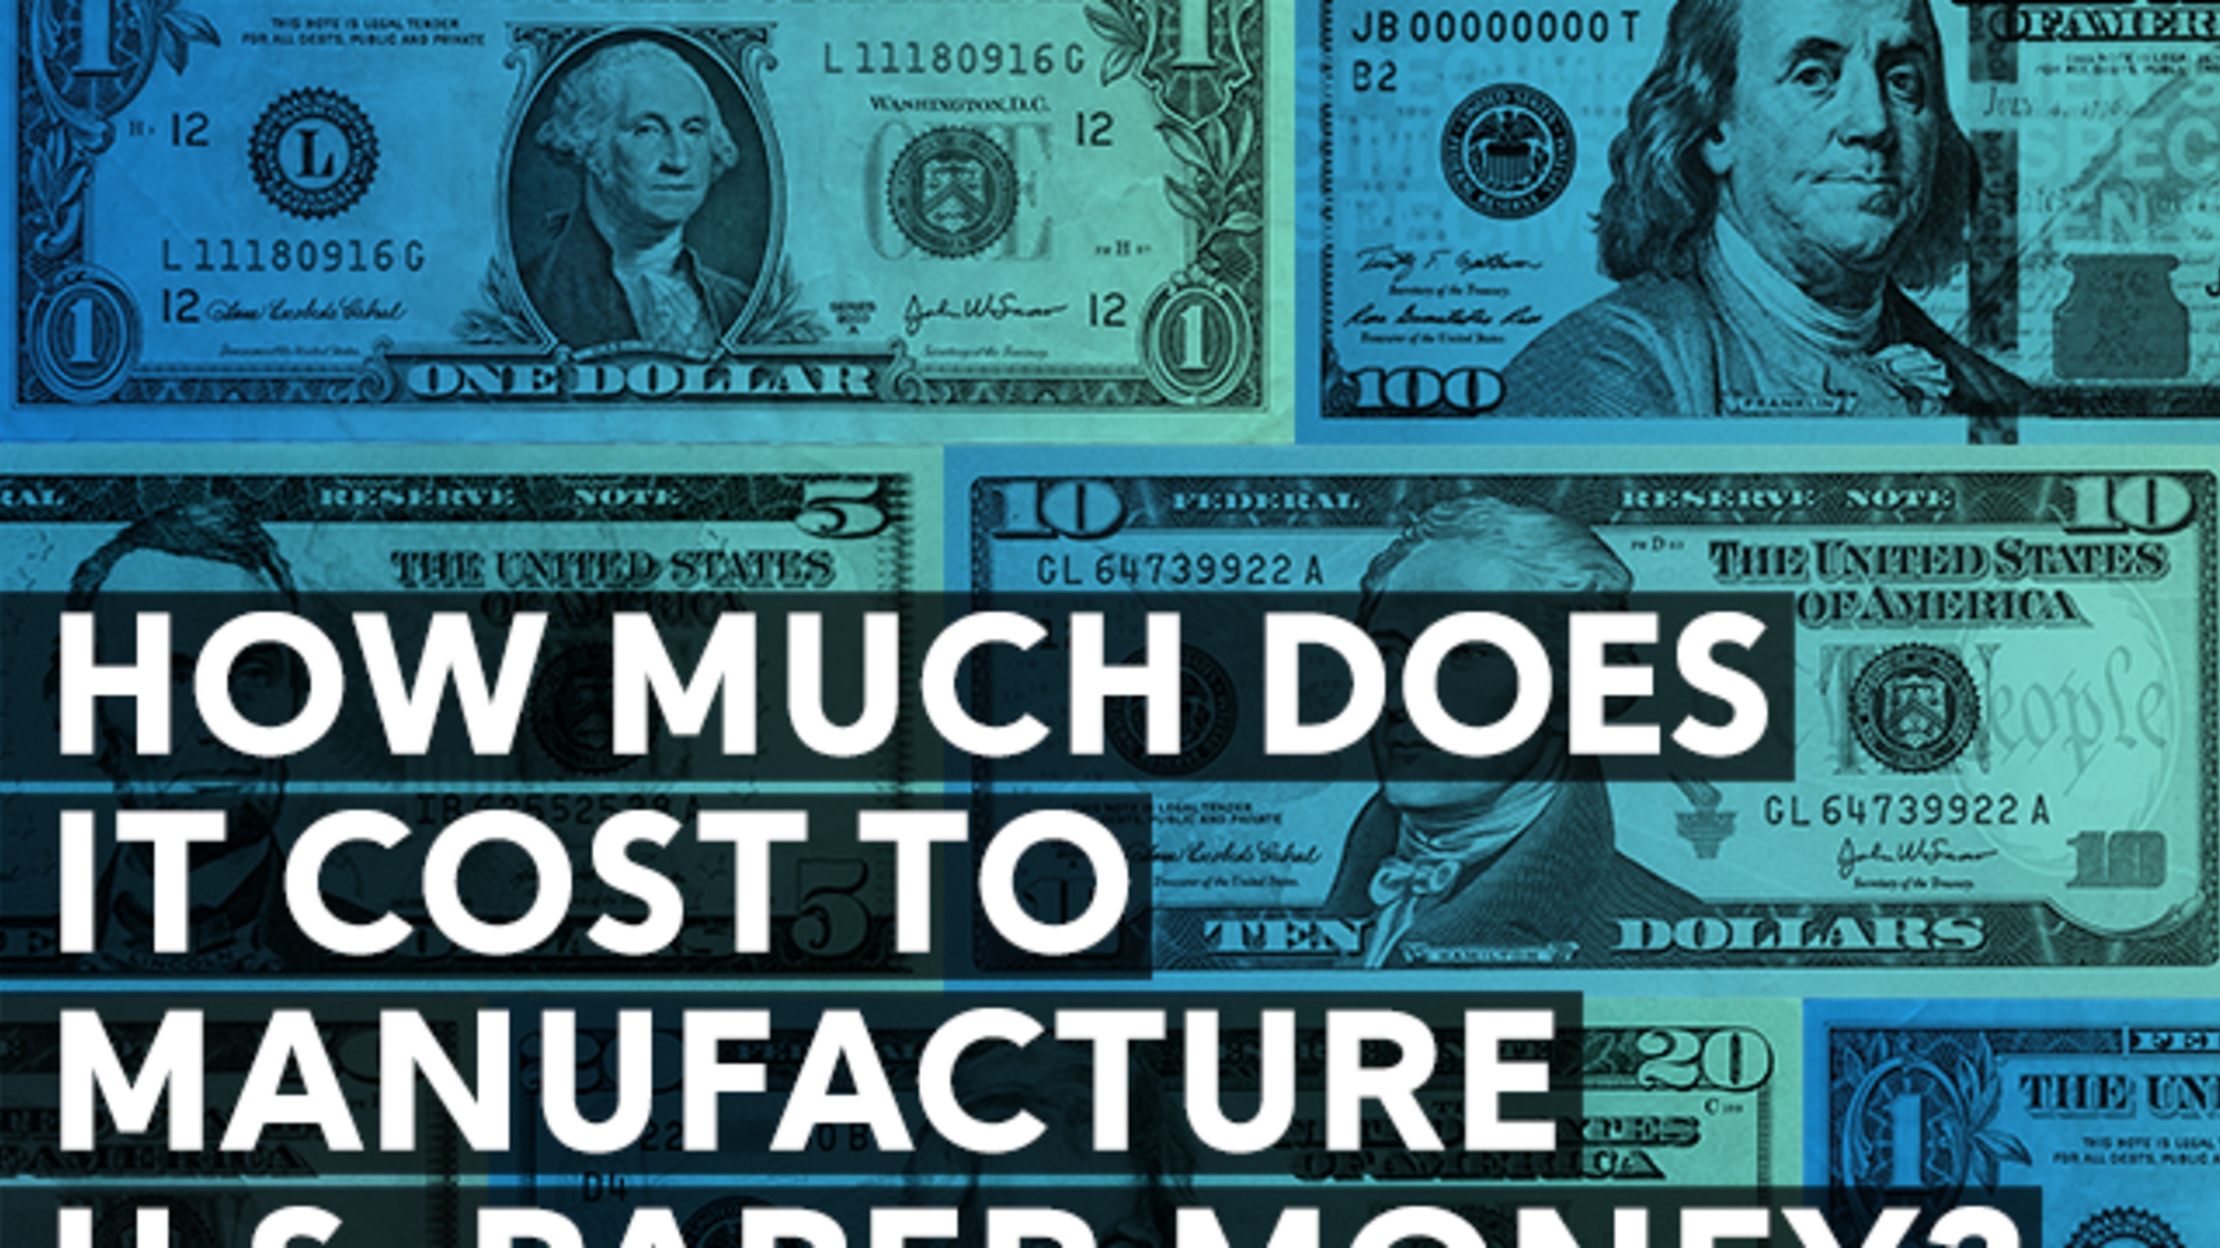 Cost To Manufacture U S Paper Money